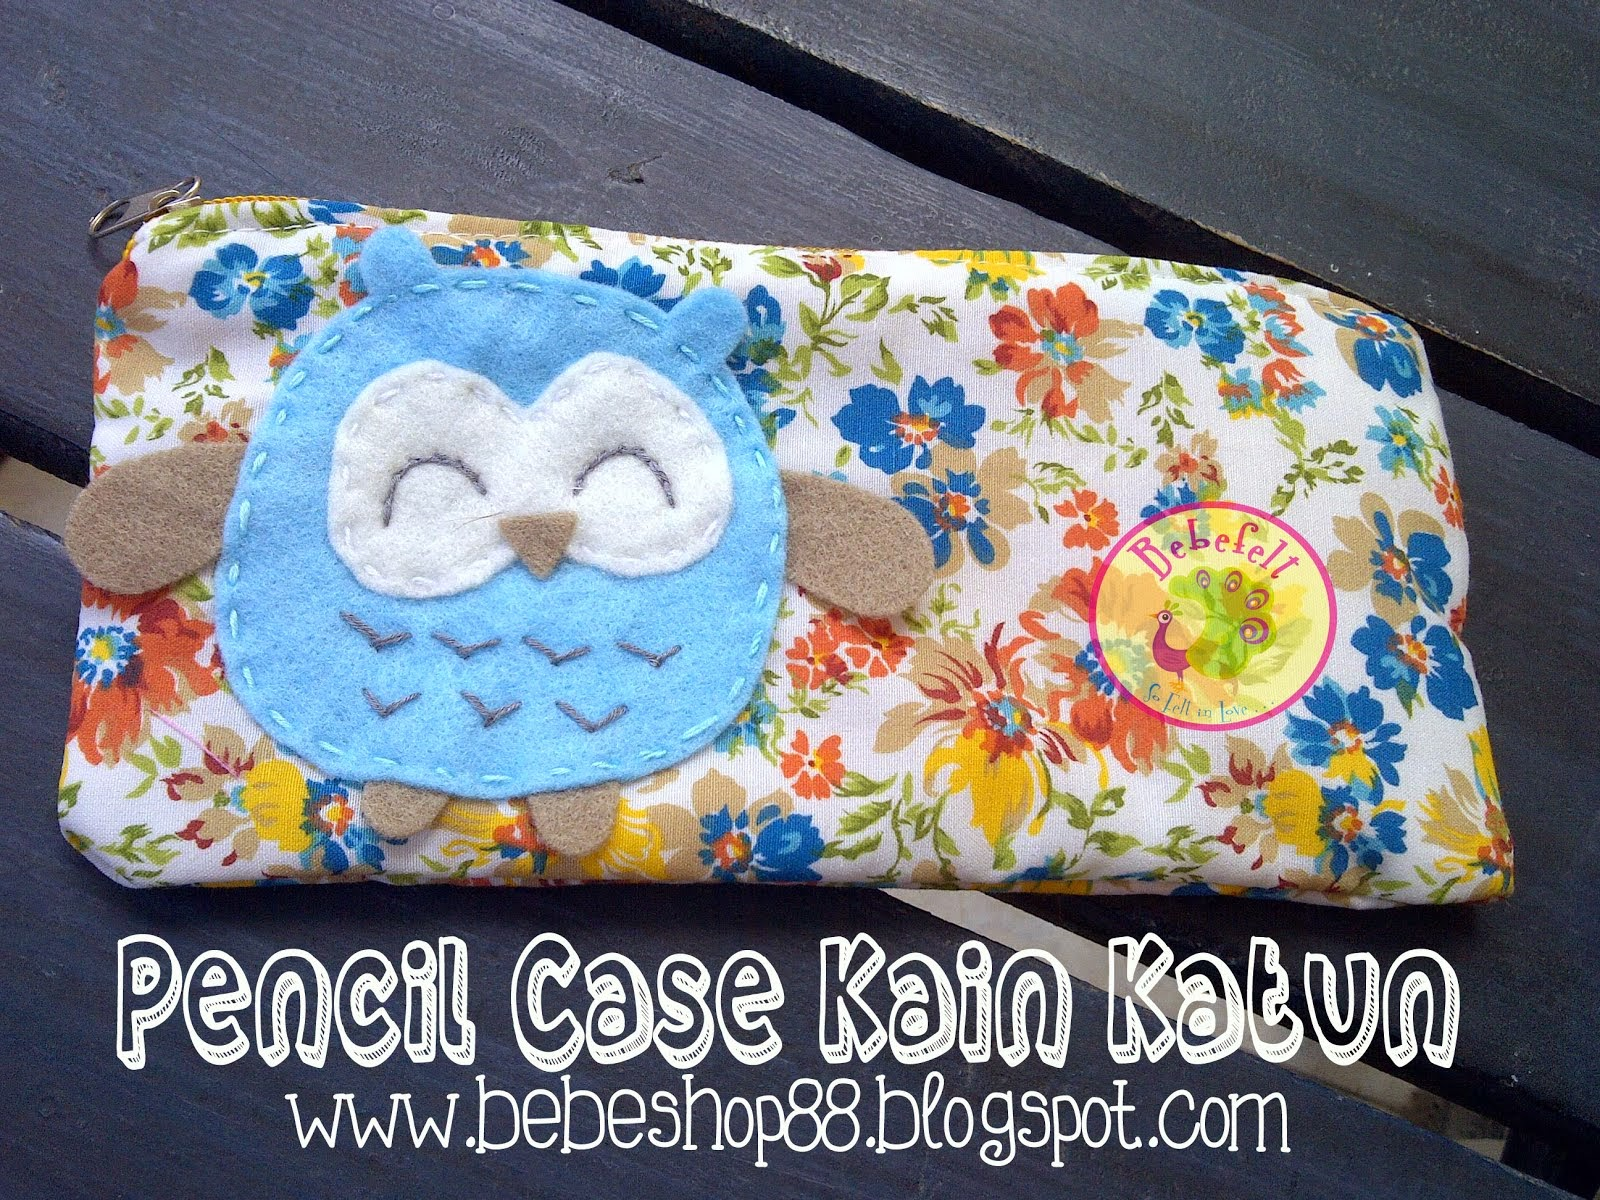 Pencil Case Katun